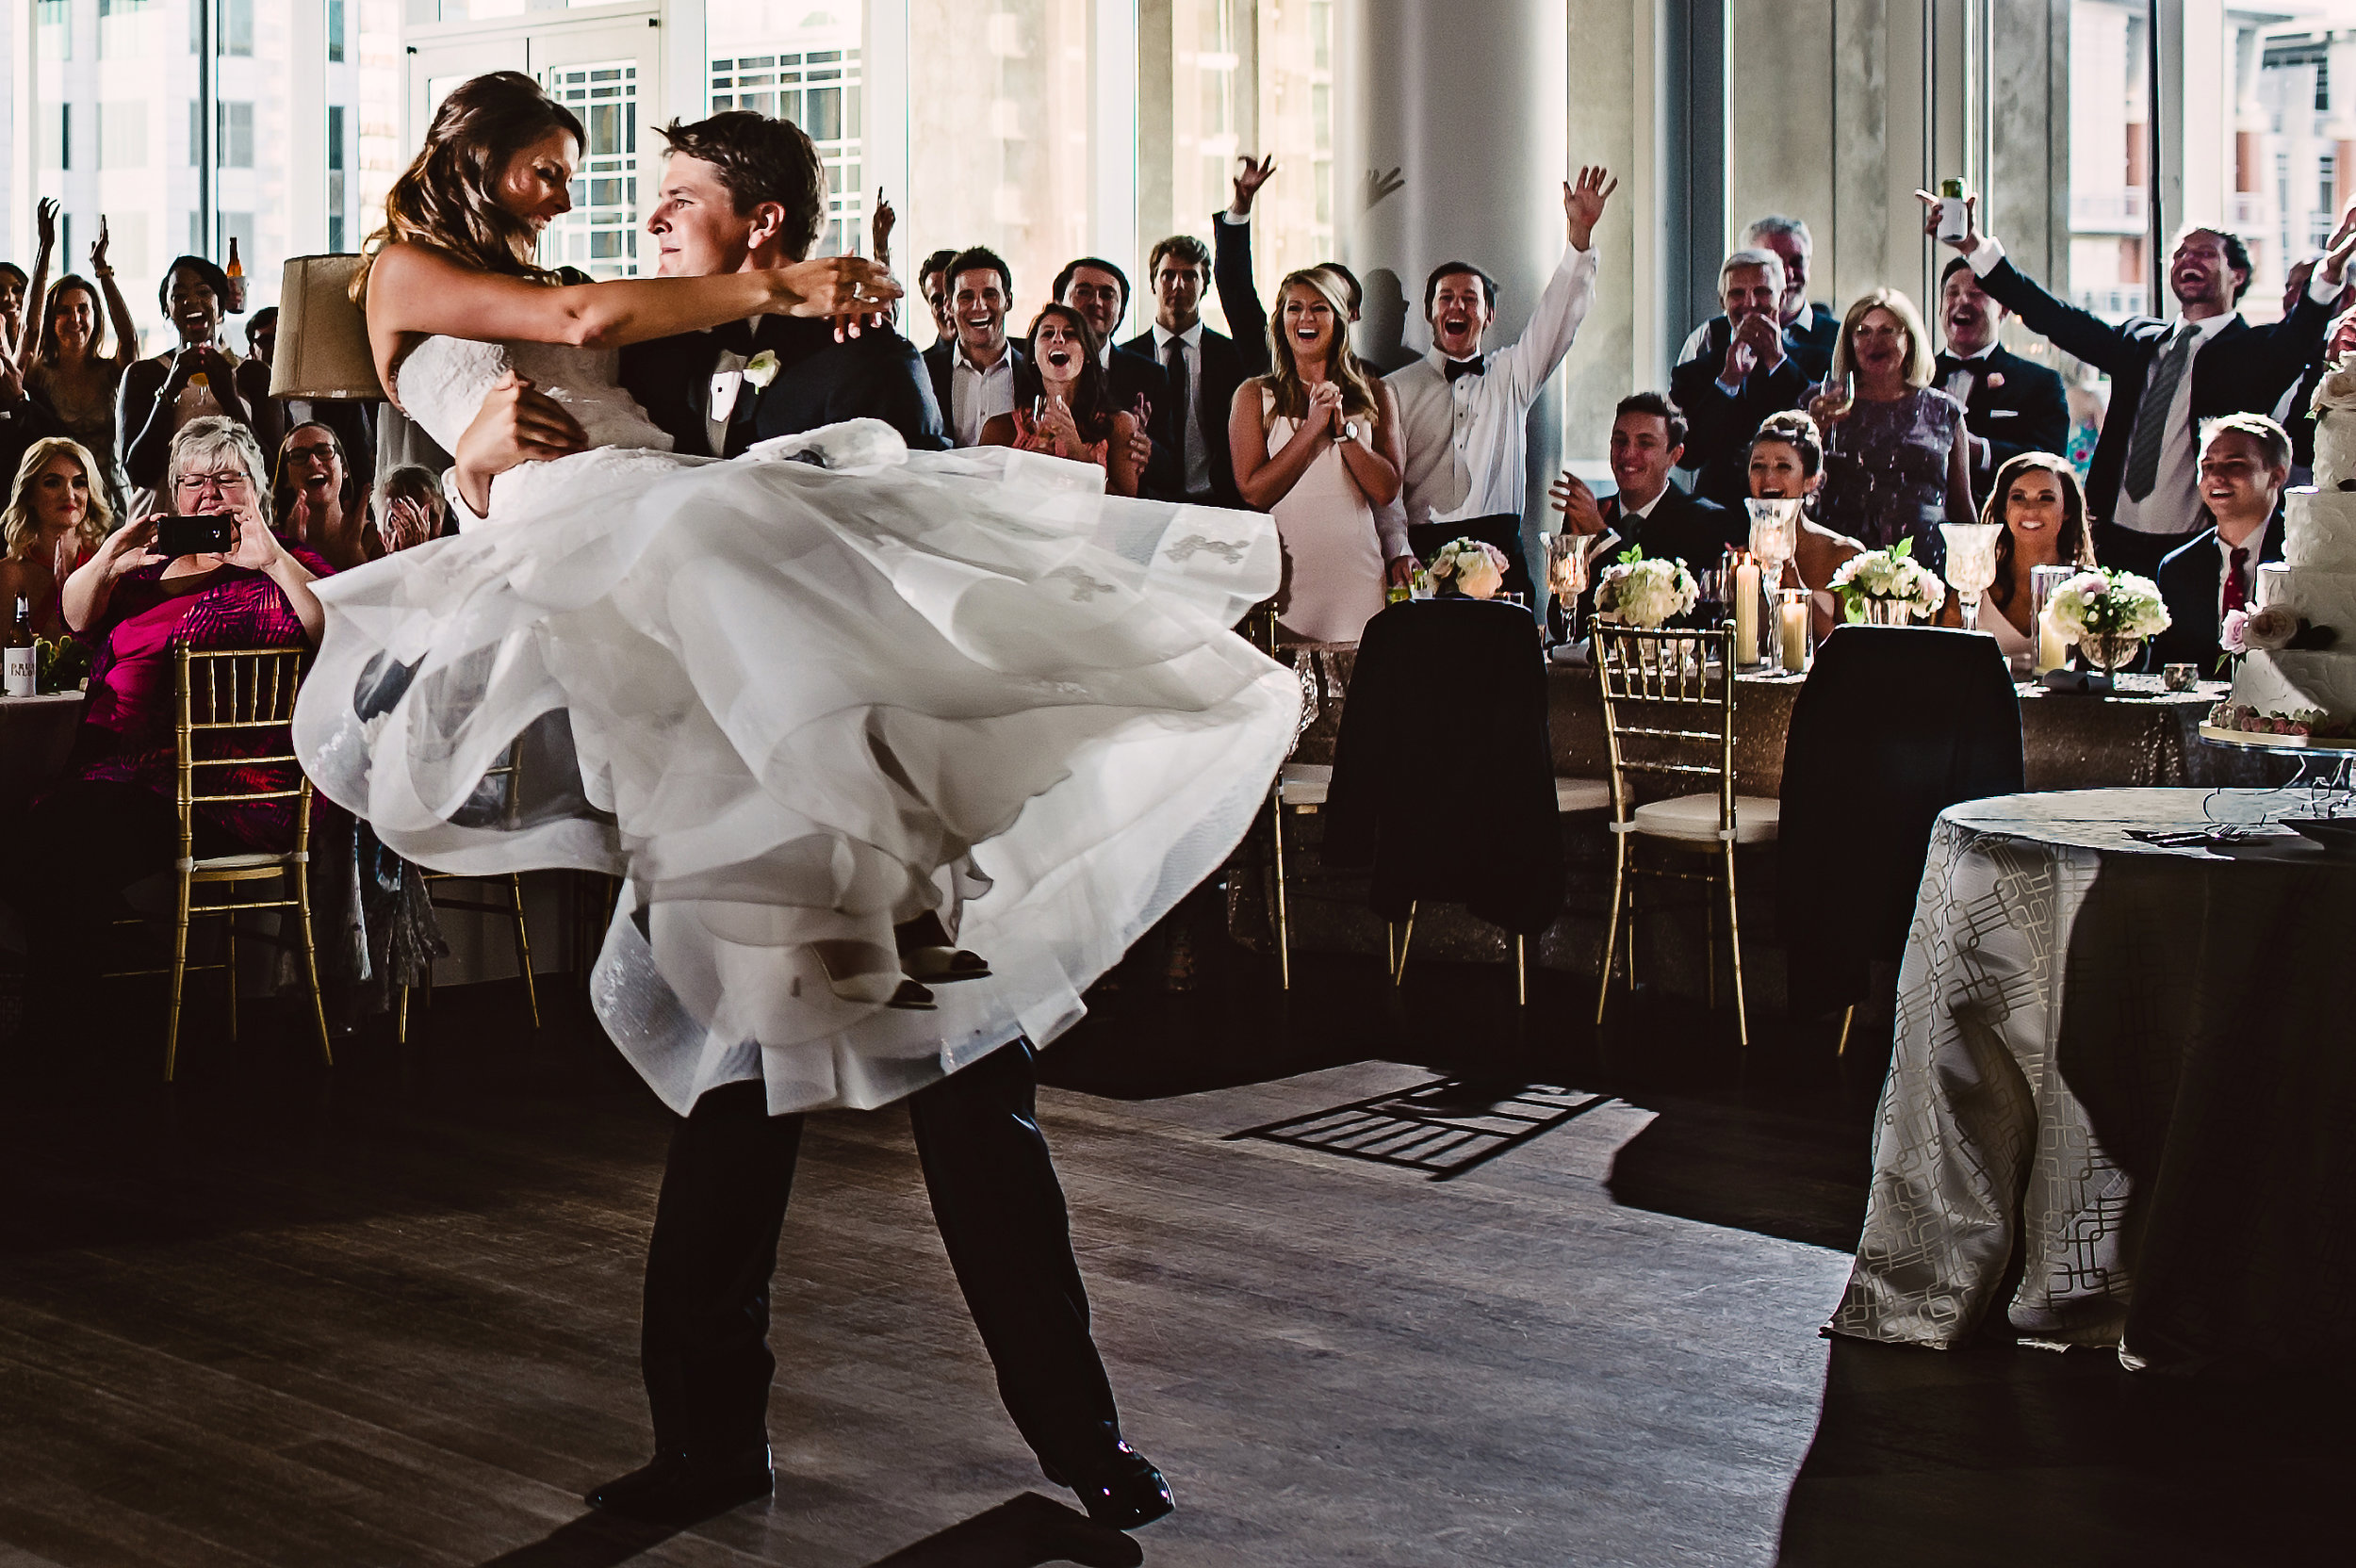 Epic first dance, Wedding first dance, Lace wedding dress, Monique Lhuillier wedding dress,  Must have wedding photos, Choreographed first dance, Mint Museum Uptown wedding in Charlotte, North Carolina by The Graceful Host